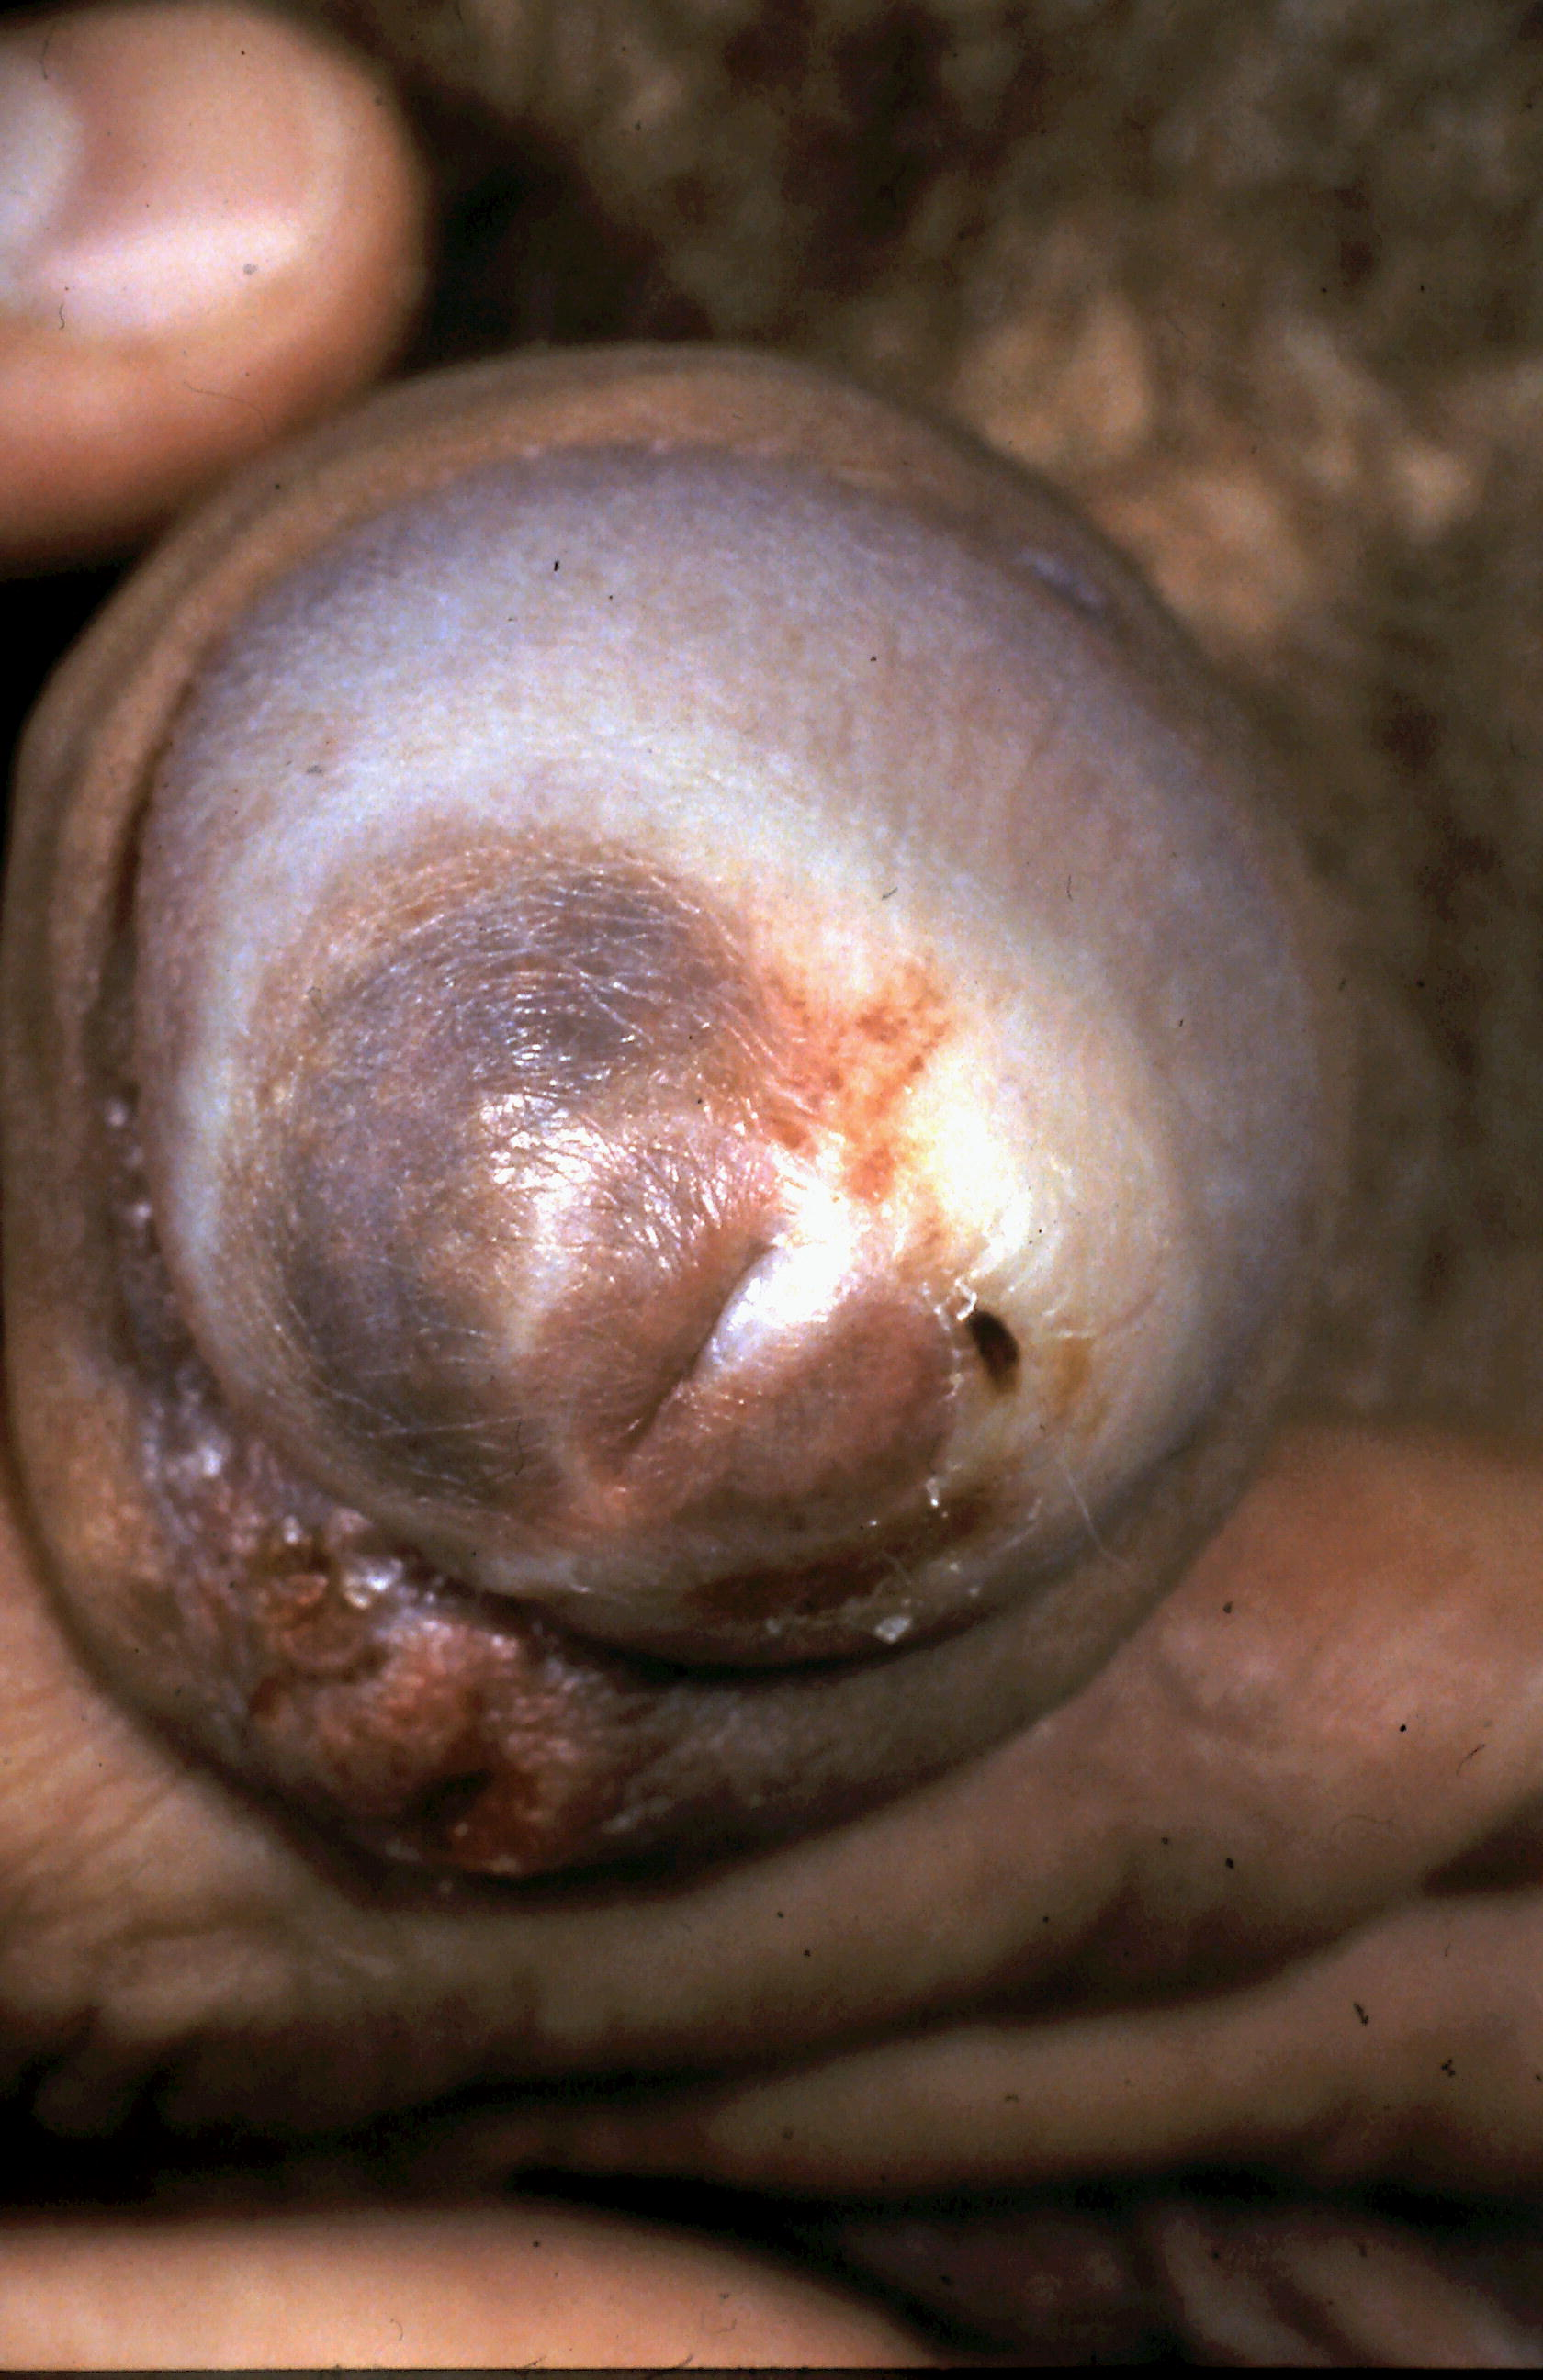 Anal lichen planus that interrupt